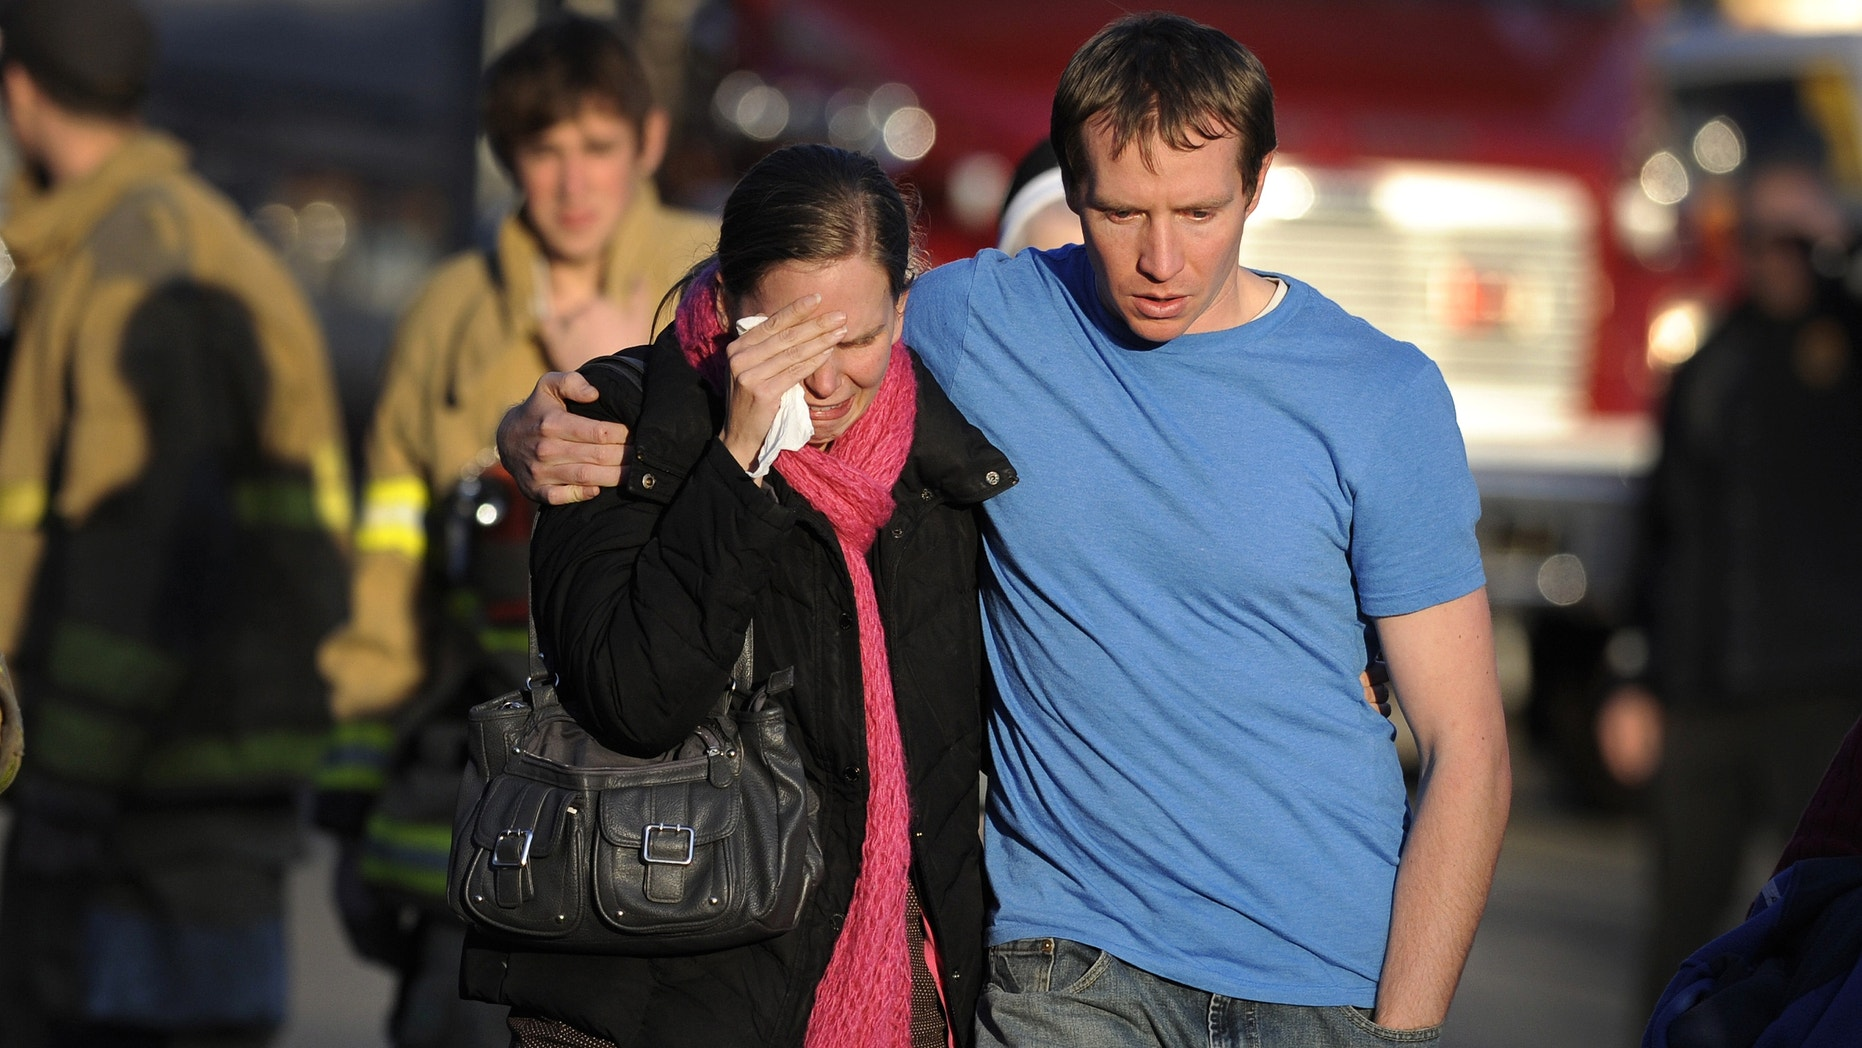 In this Dec. 14, 2012 file photo, Alissa Parker, left, and her husband, Robbie Parker,  leave the firehouse staging after receiving word that their six-year-old daughter Emilie was one of the 20 children killed in the Sandy Hook School shooting in Newtown, Conn.